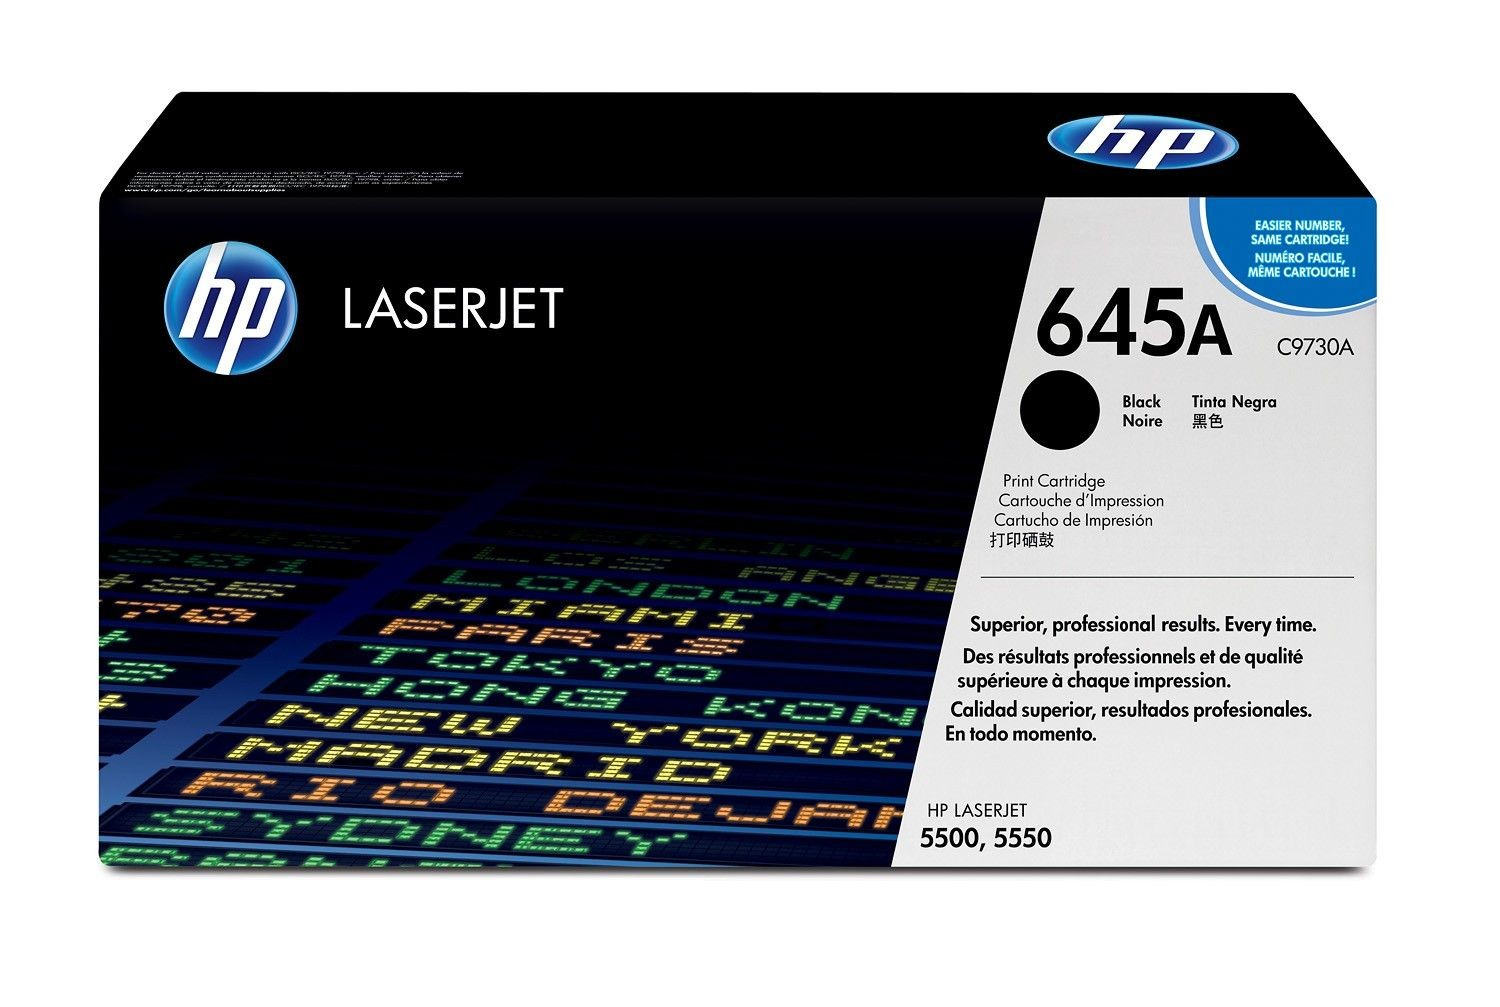 HP Toner HP black | 13000str | ColorLaserJet5500